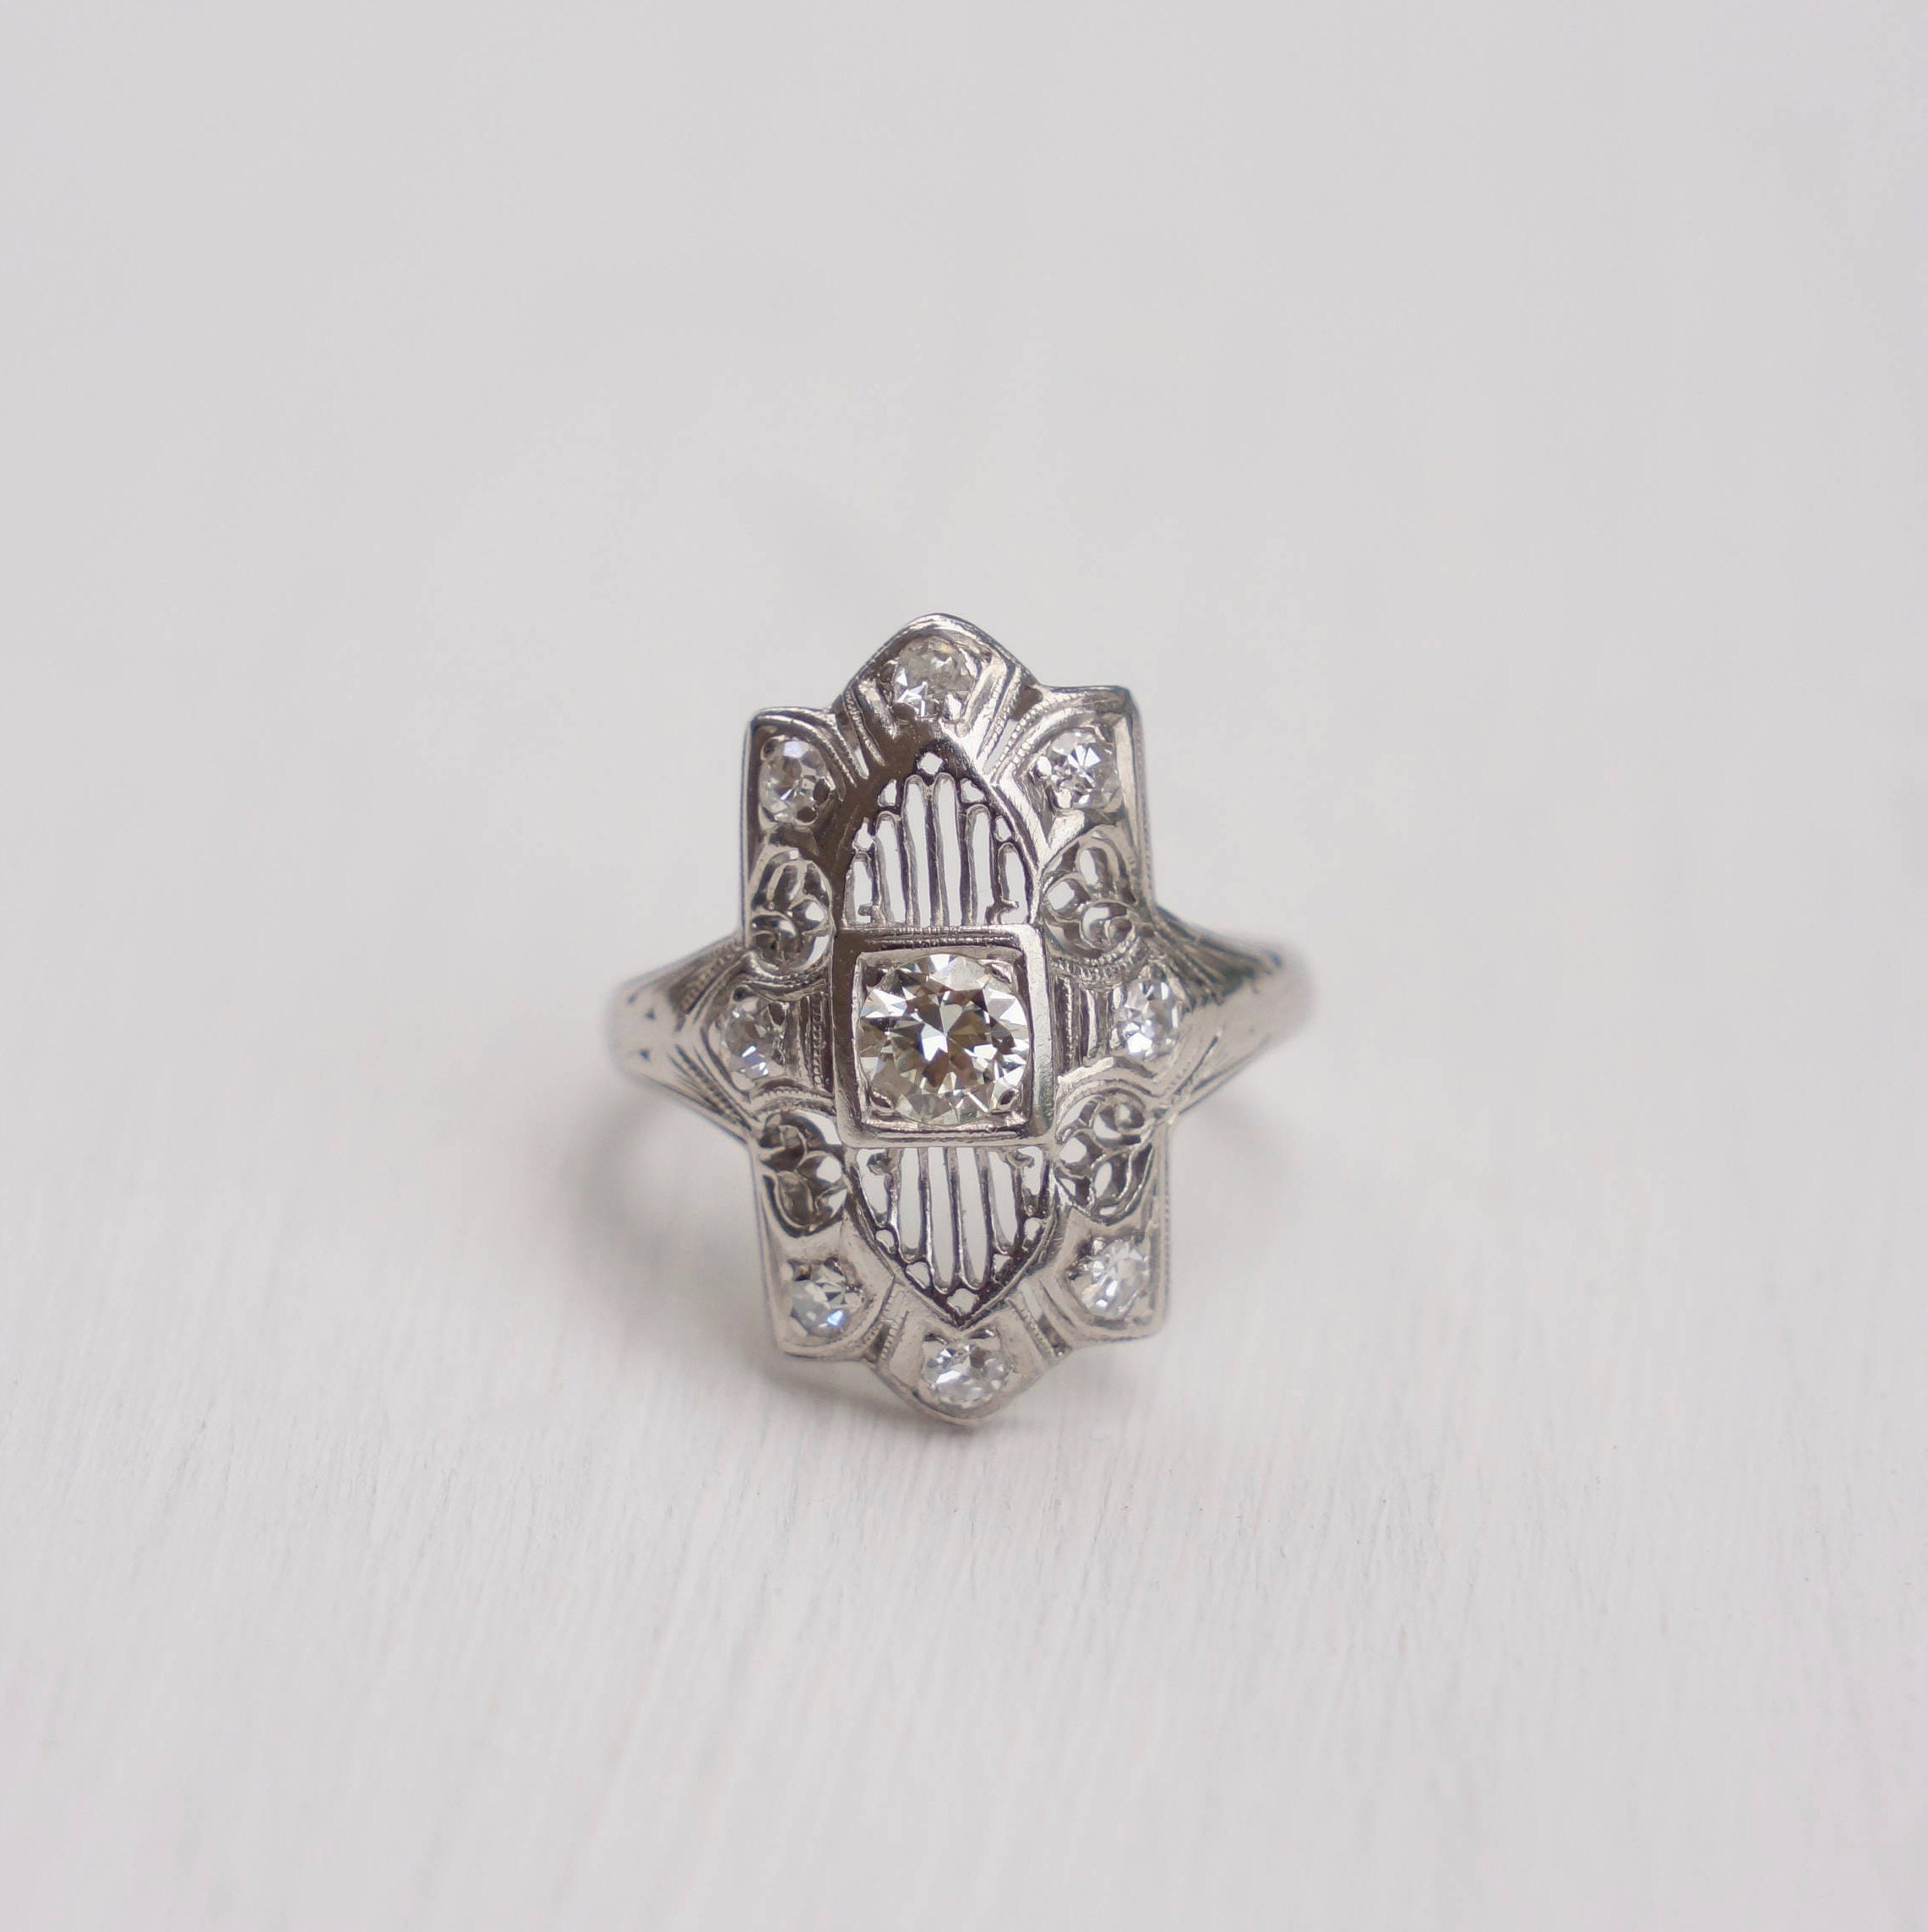 diamond talisman fine los d london rtse modern shield sg collection jewellery us jewelry angeles ring rings enamel